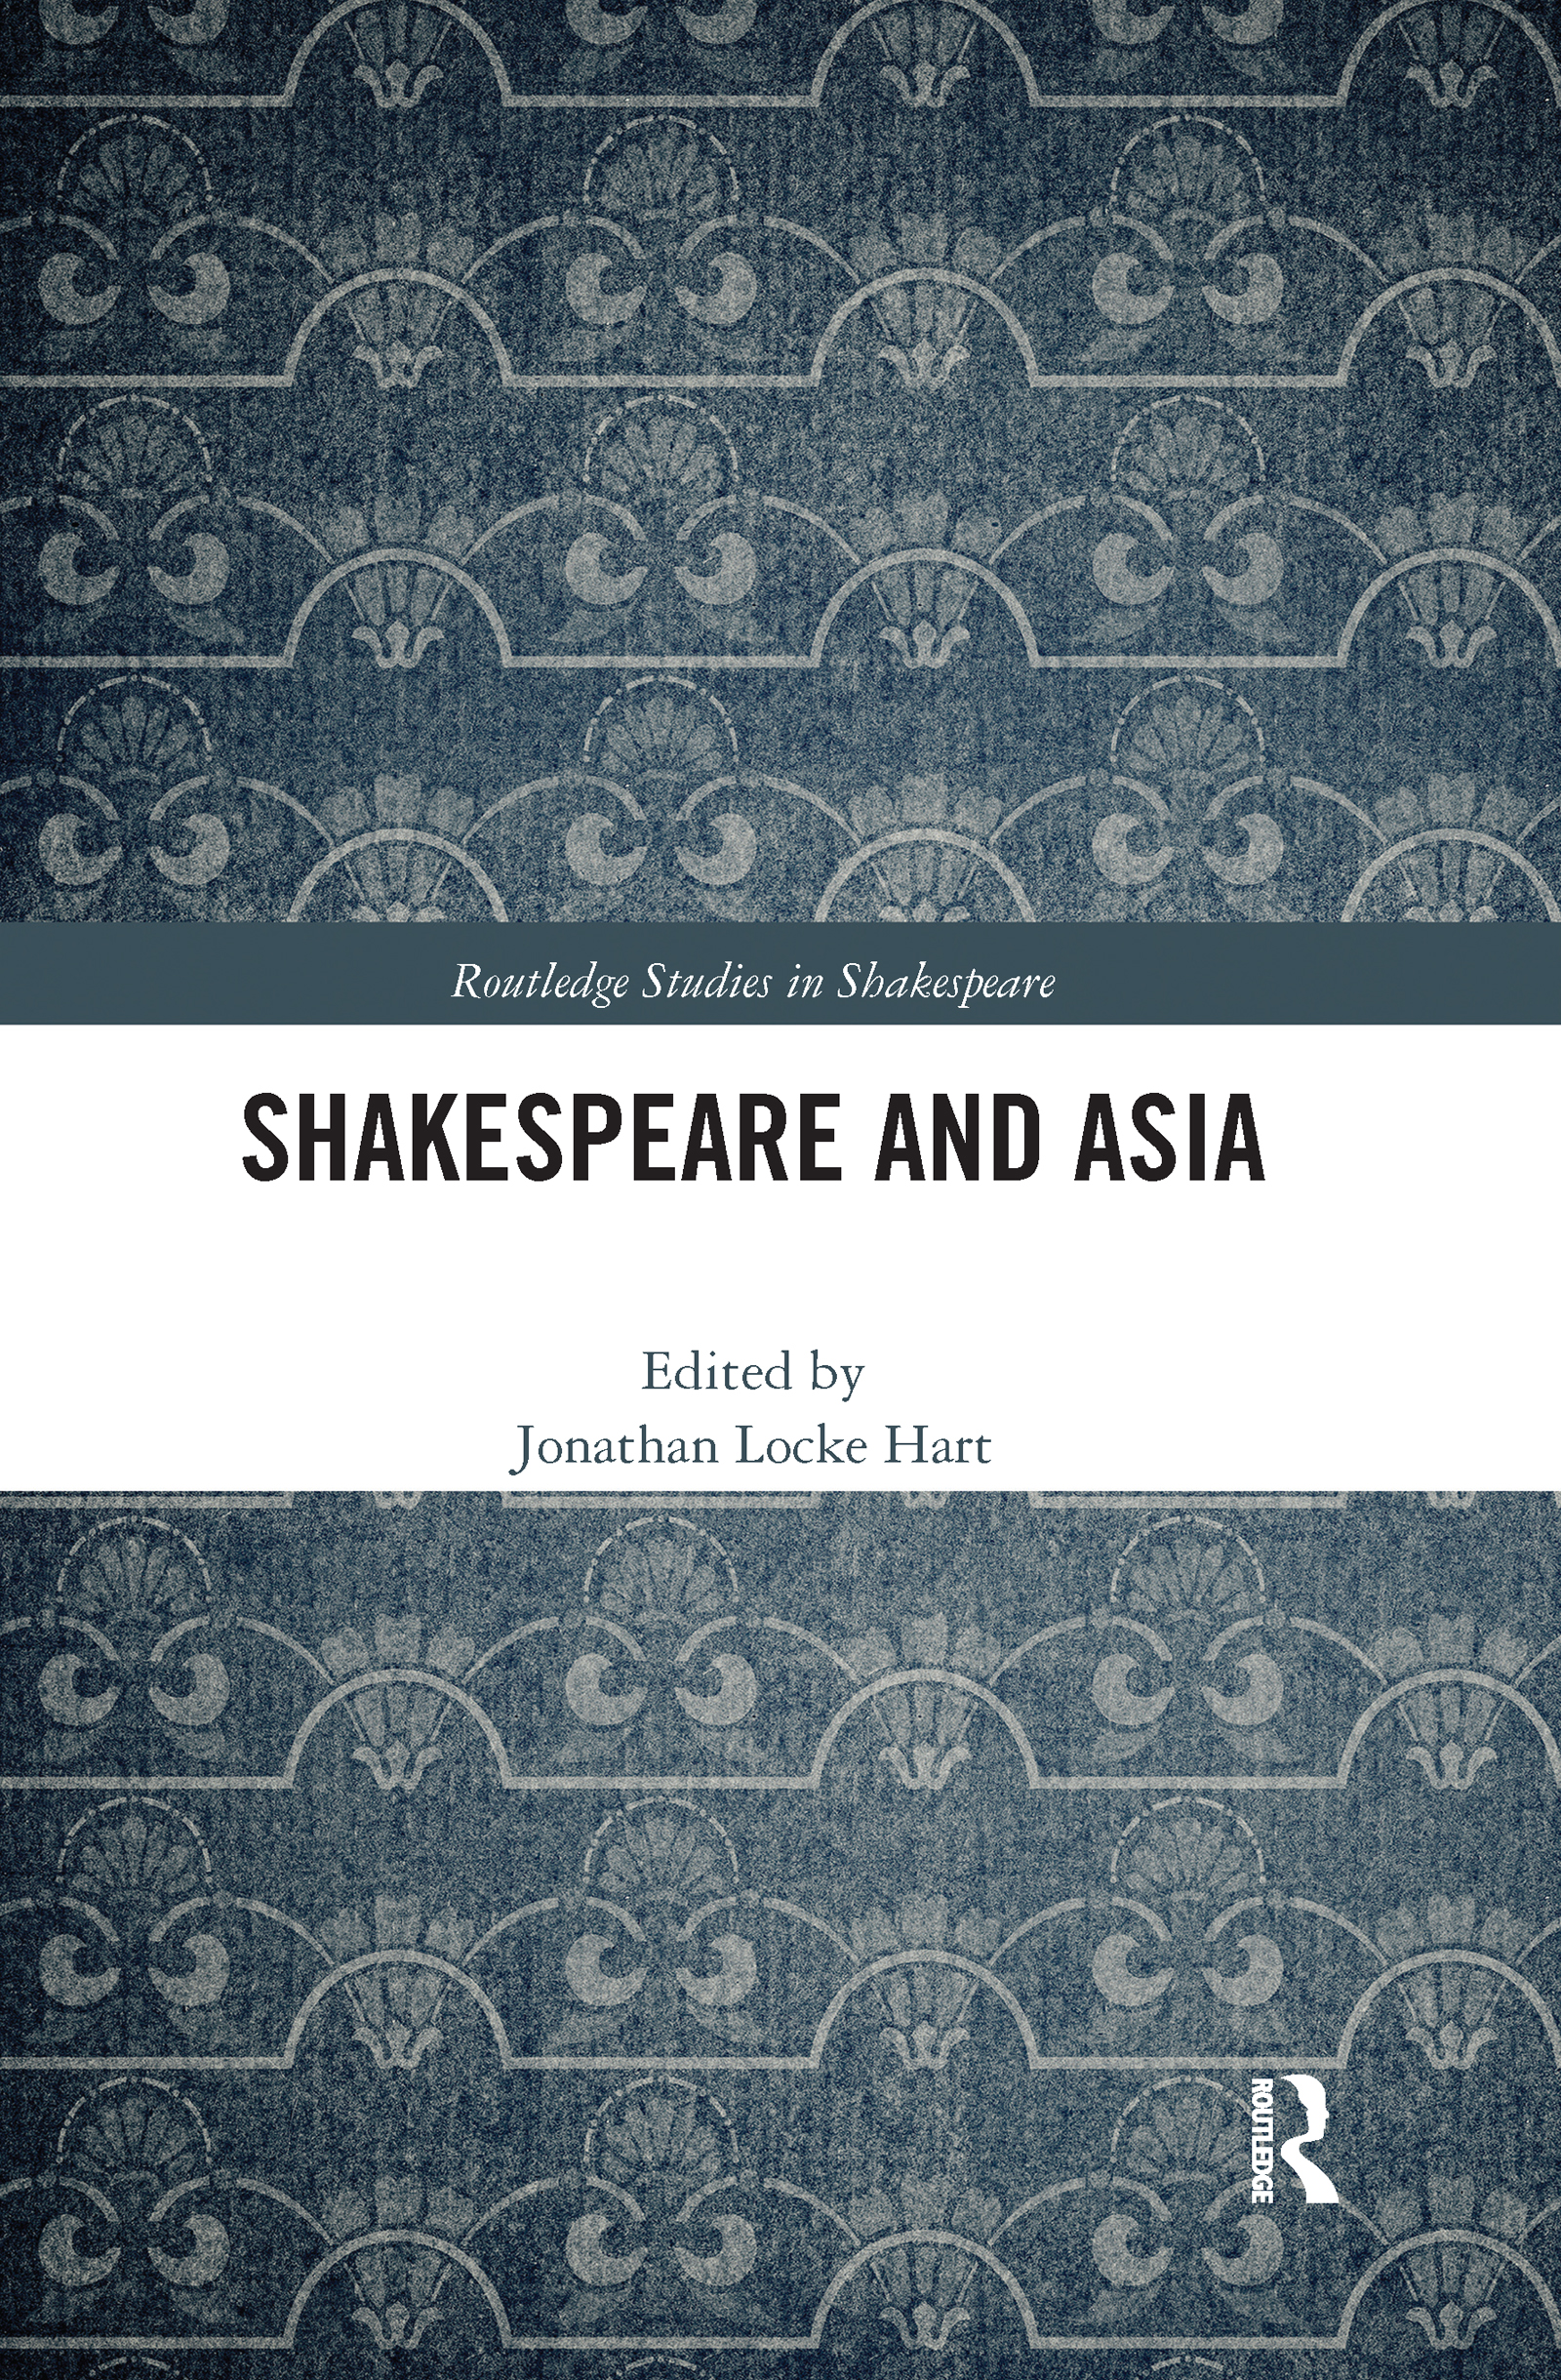 Shakespeare and Asia